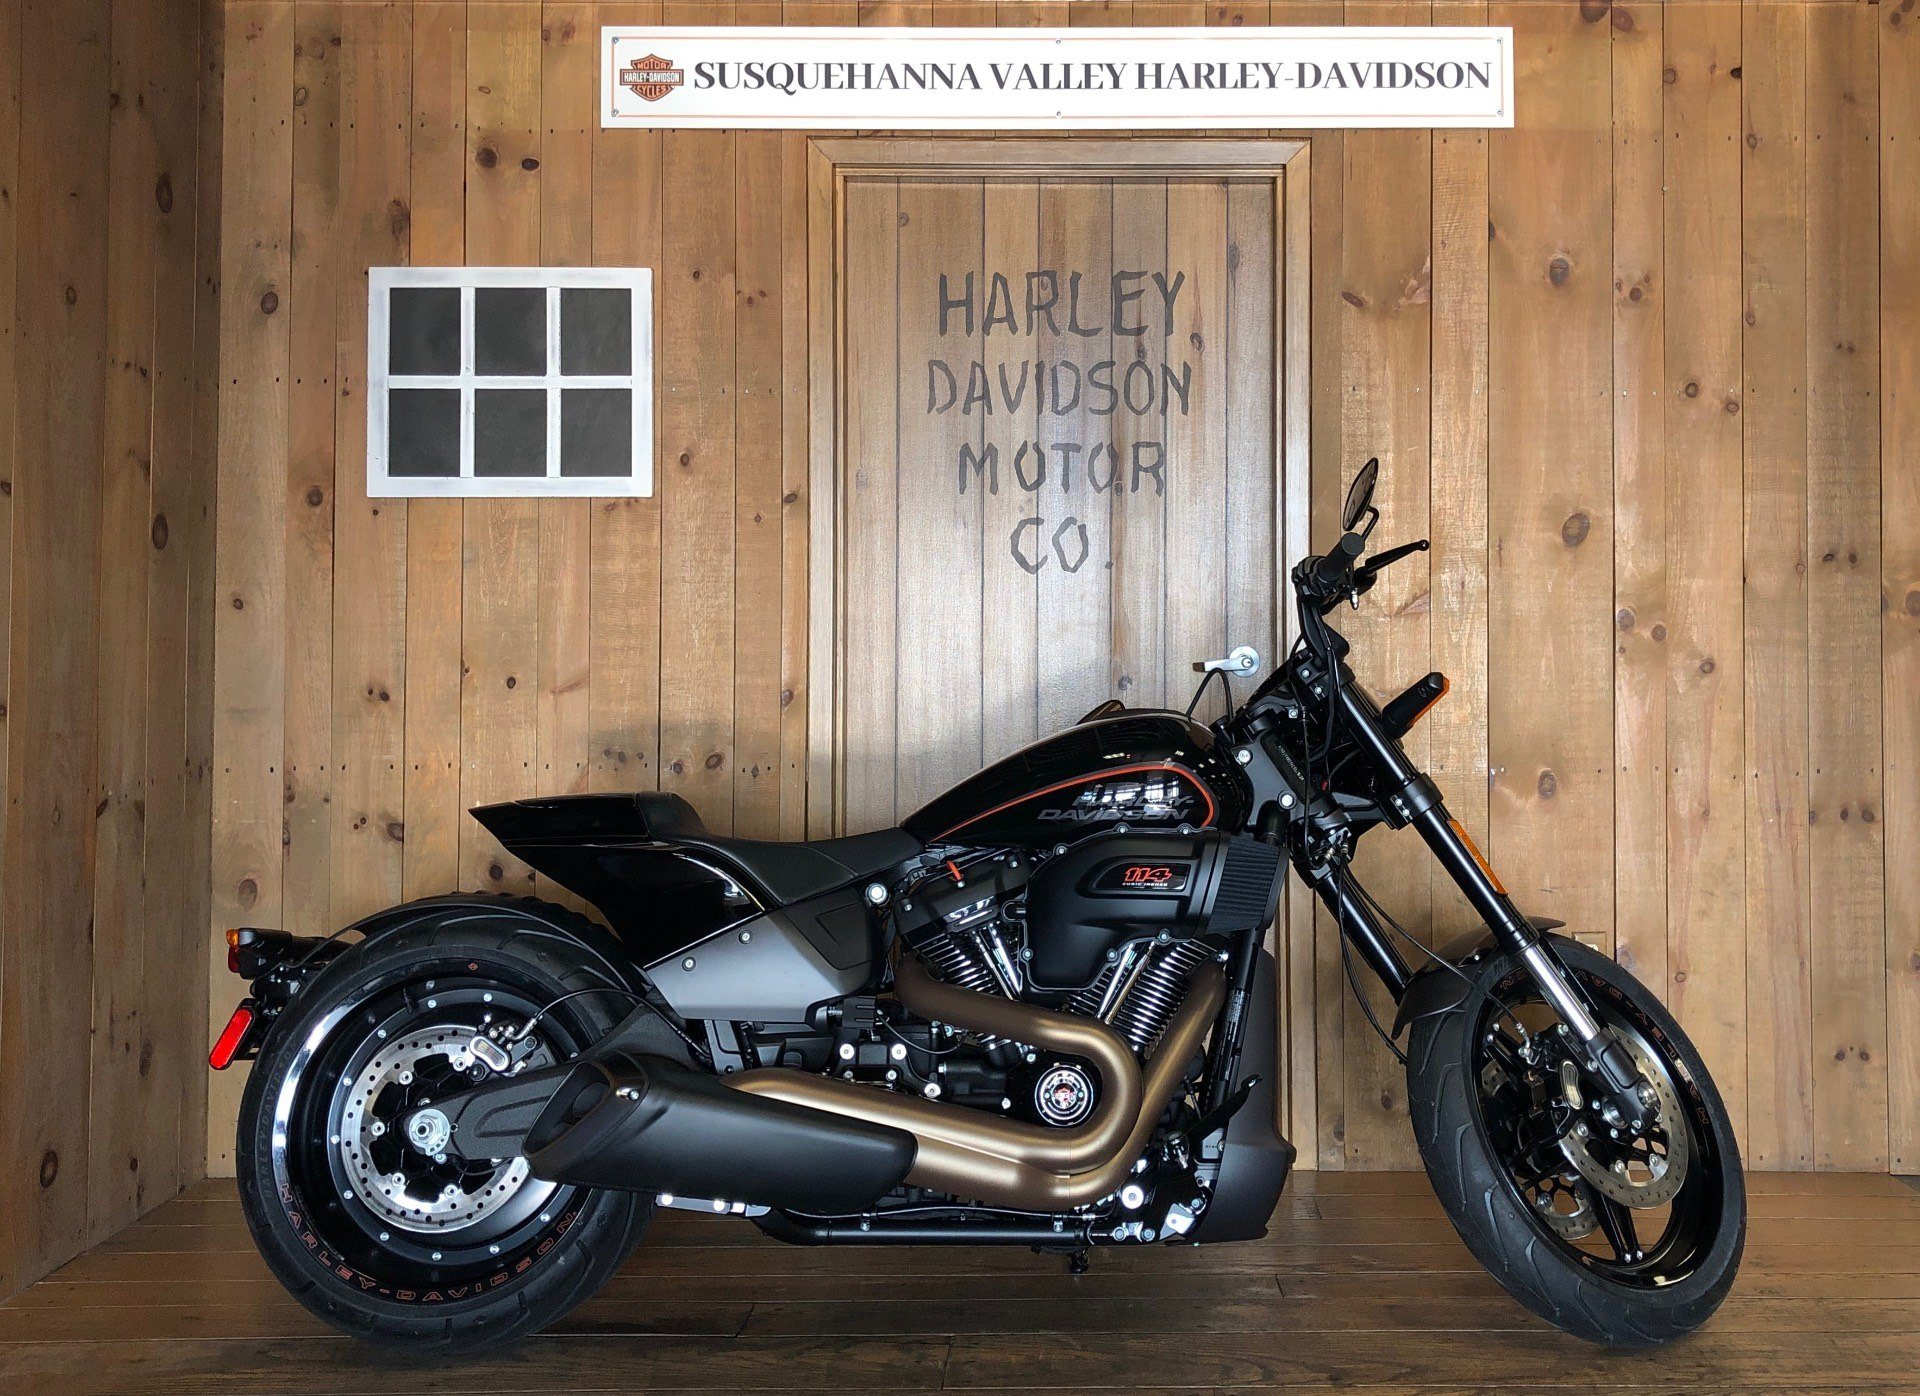 2019 Harley-Davidson FXDRS in Harrisburg, Pennsylvania - Photo 1